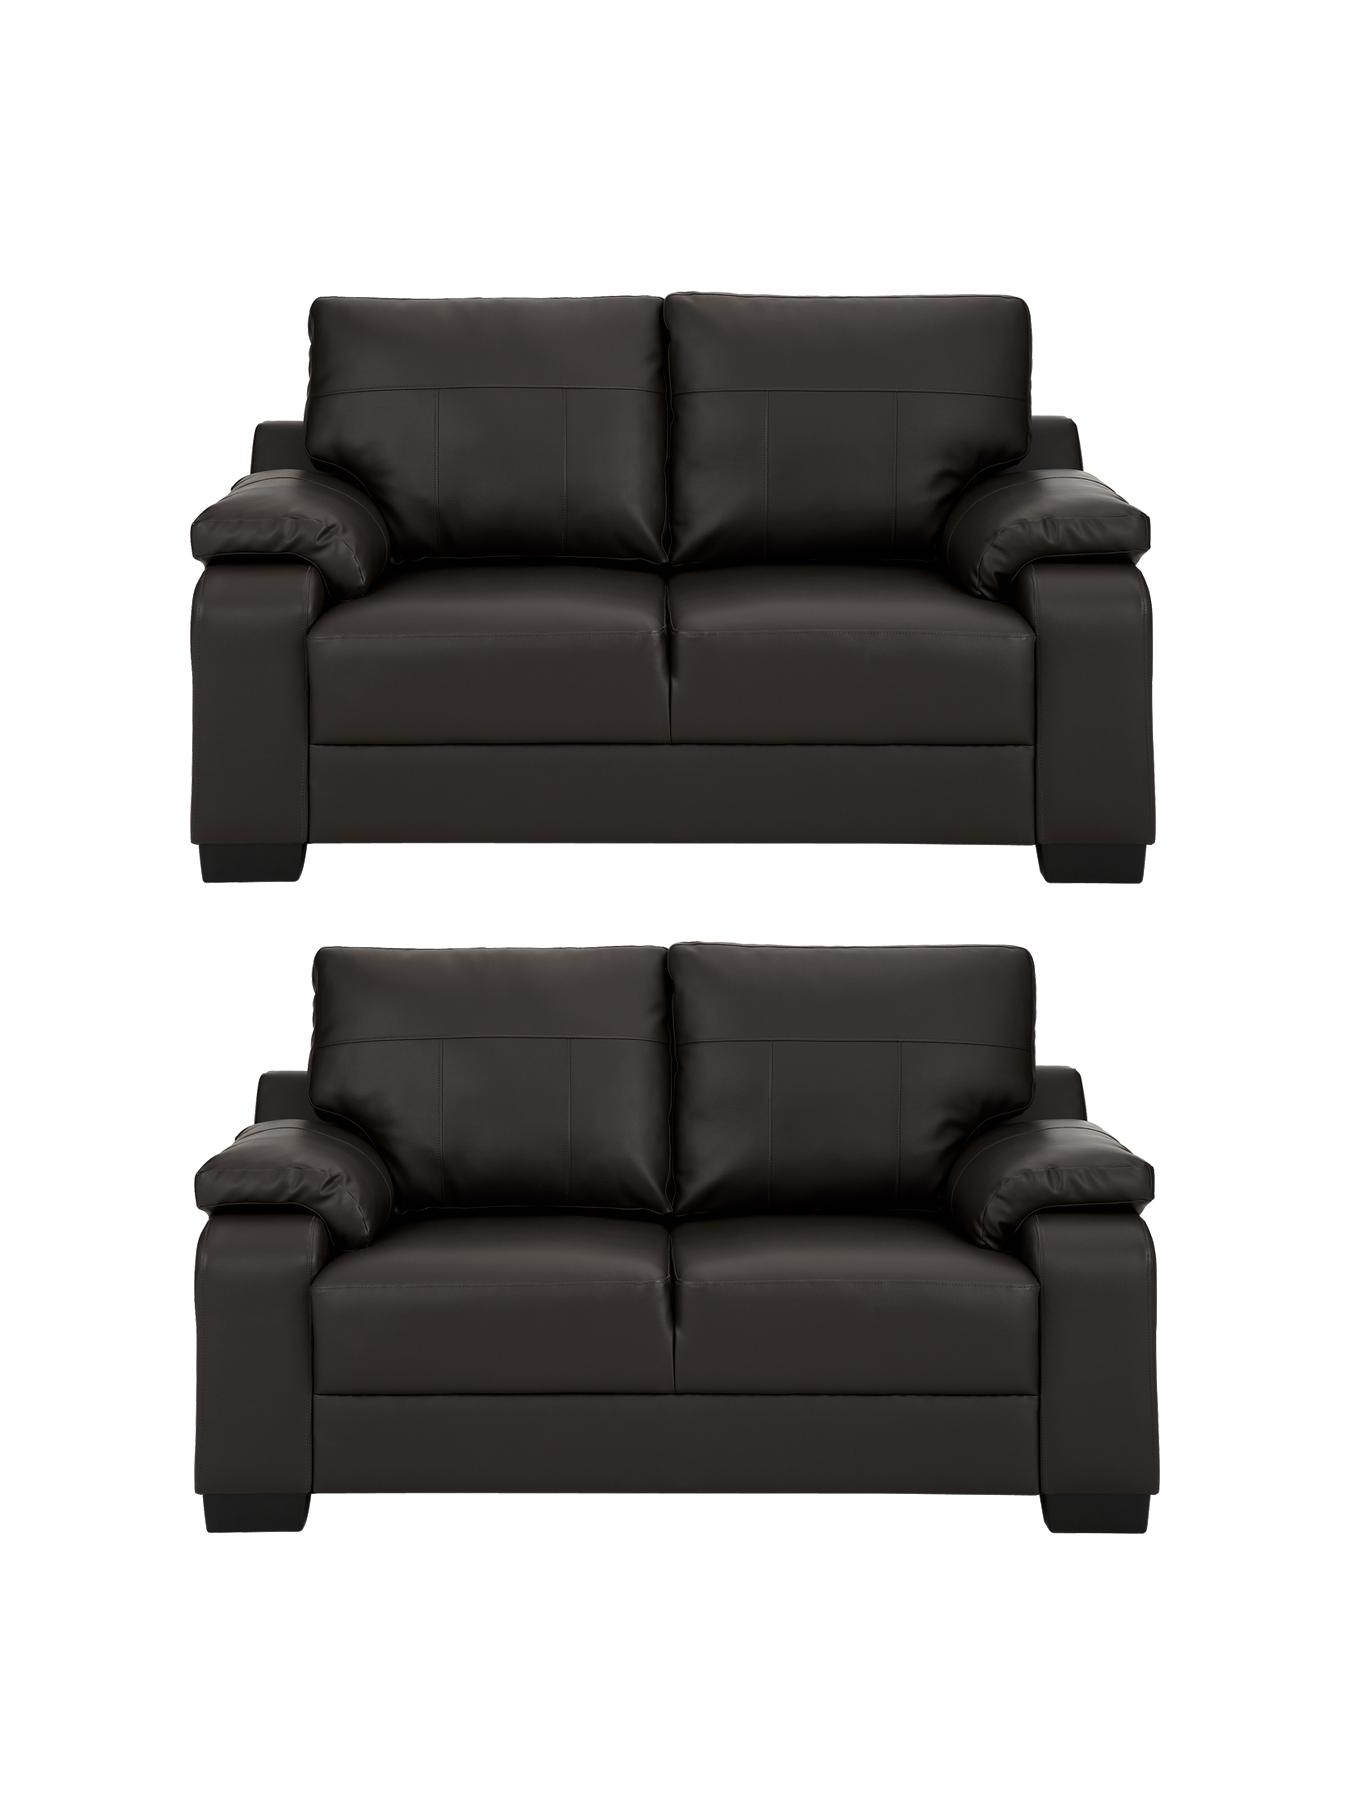 Dino 2-Seater plus 2-Seater Faux Leather Sofa Set (buy and SAVE!) - Chocolate, Chocolate,Black